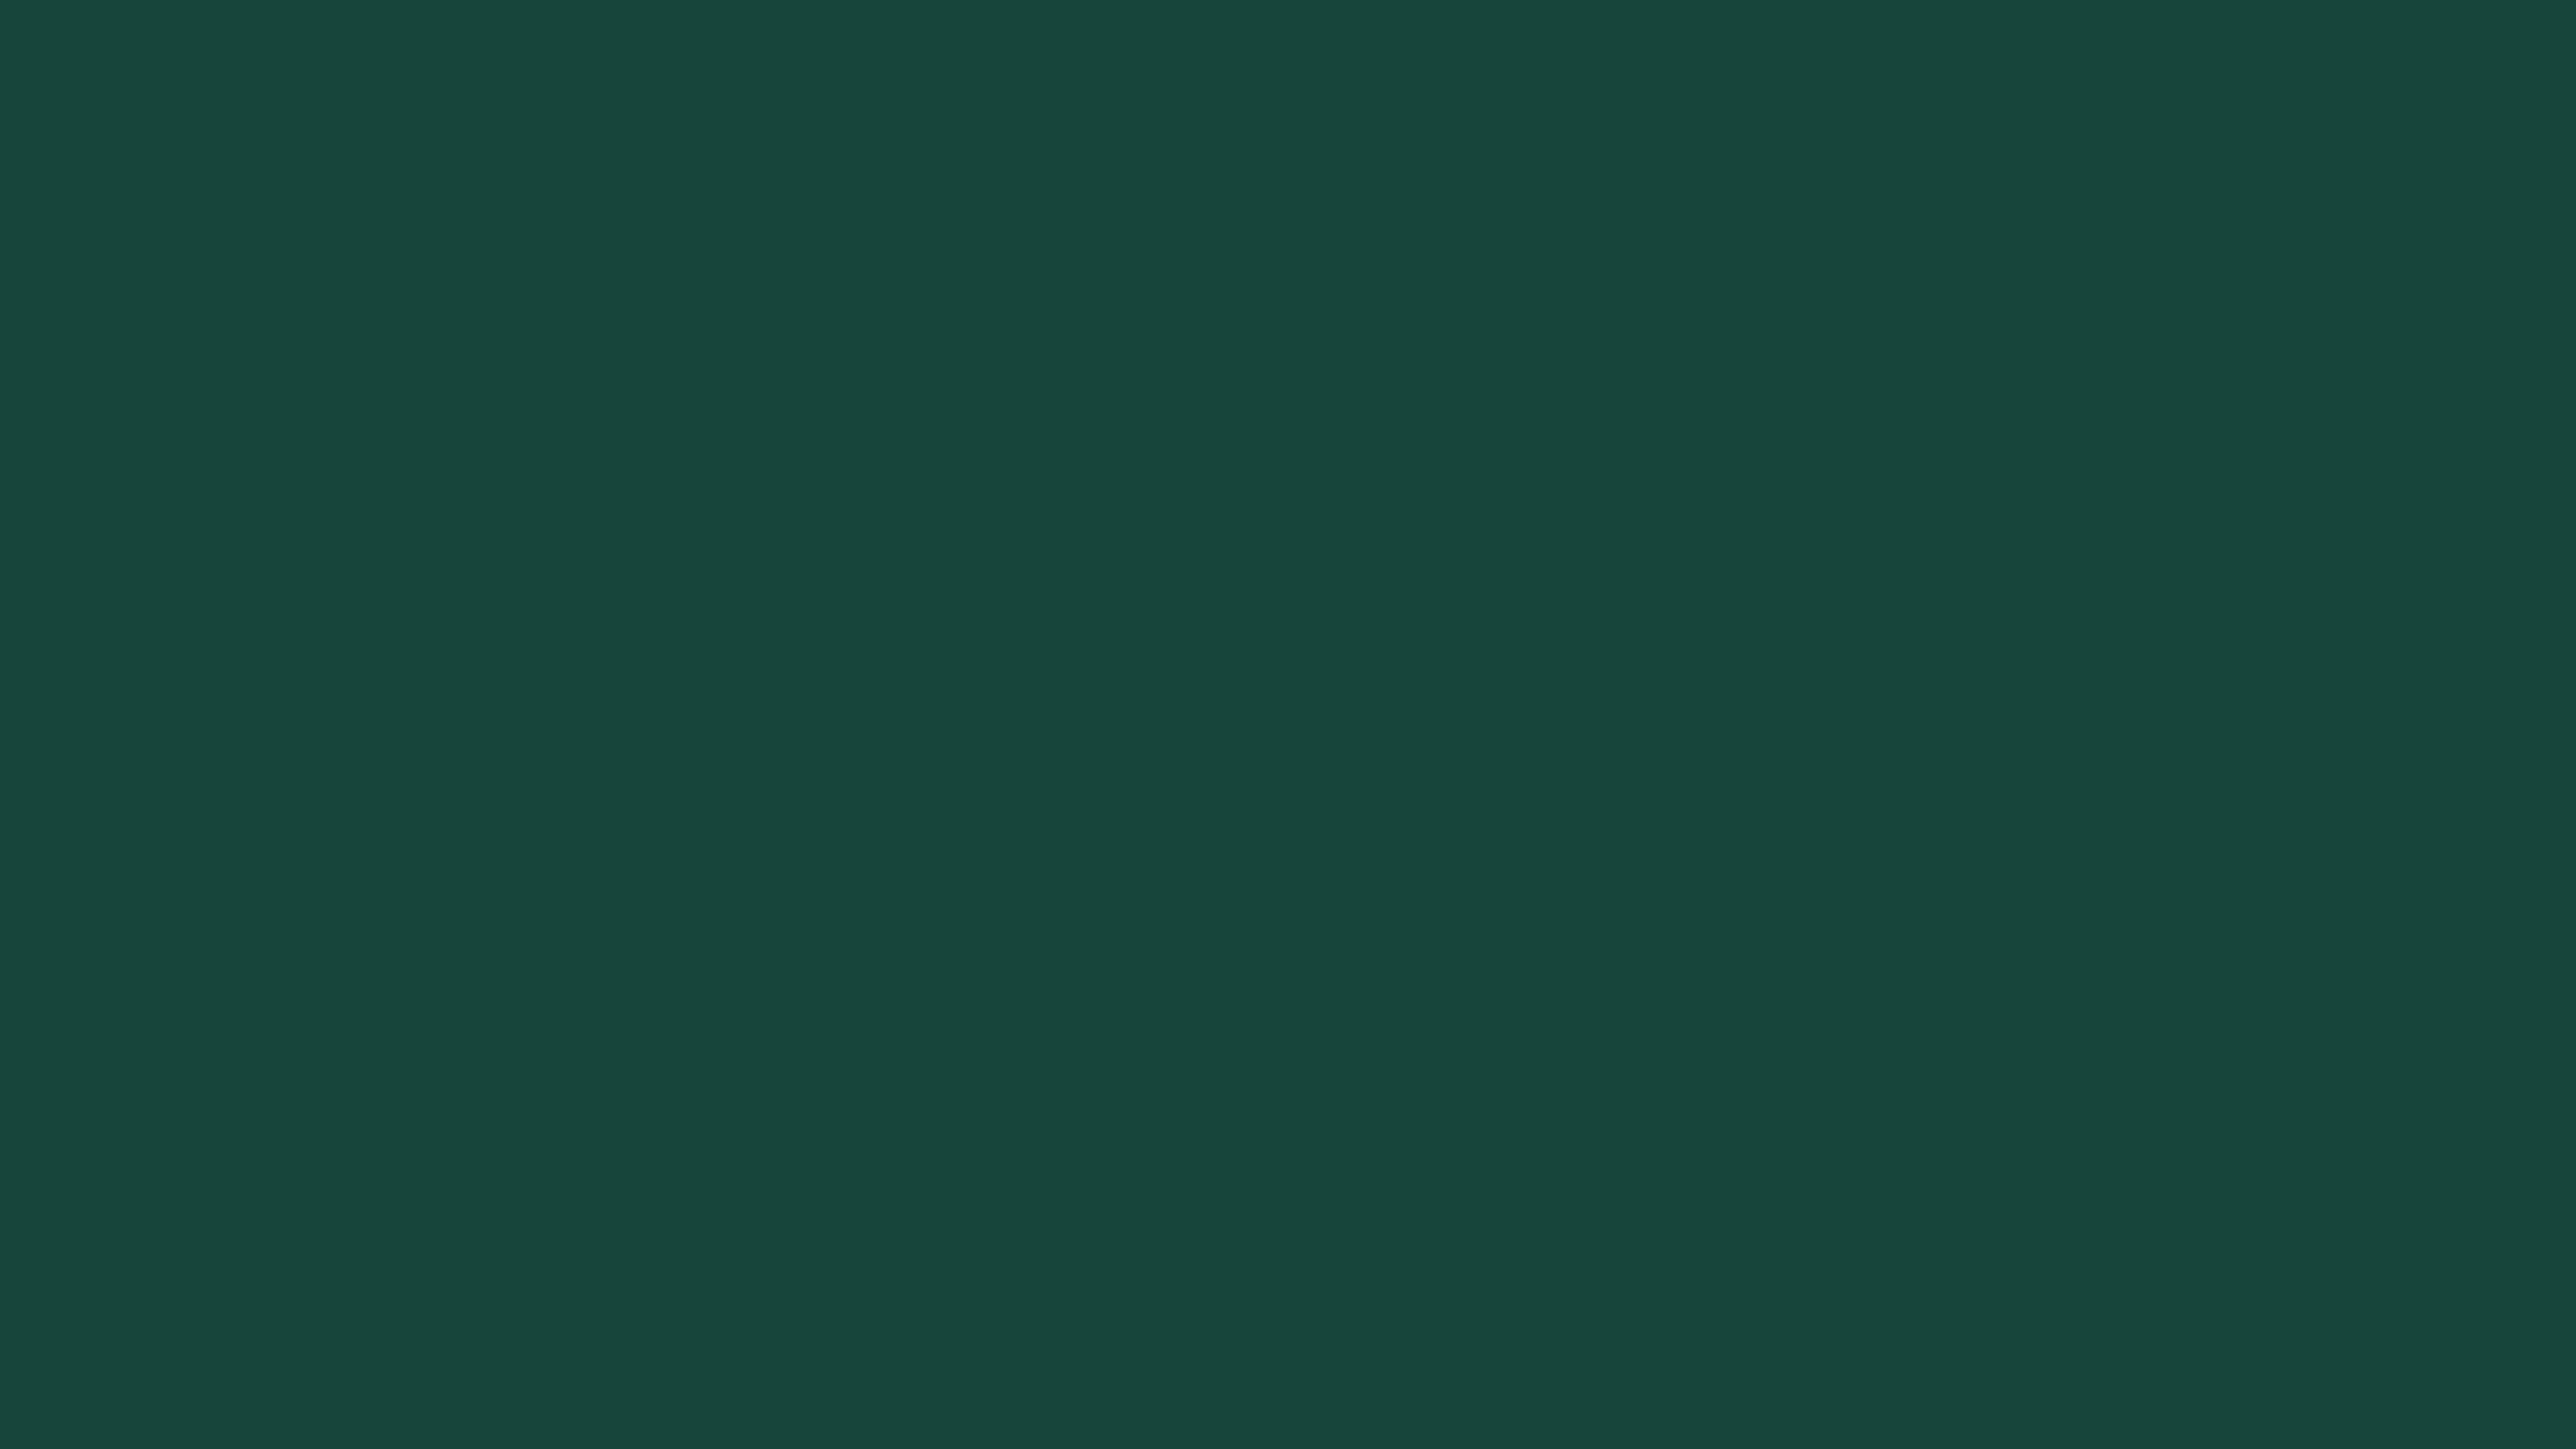 4096x2304 MSU Green Solid Color Background